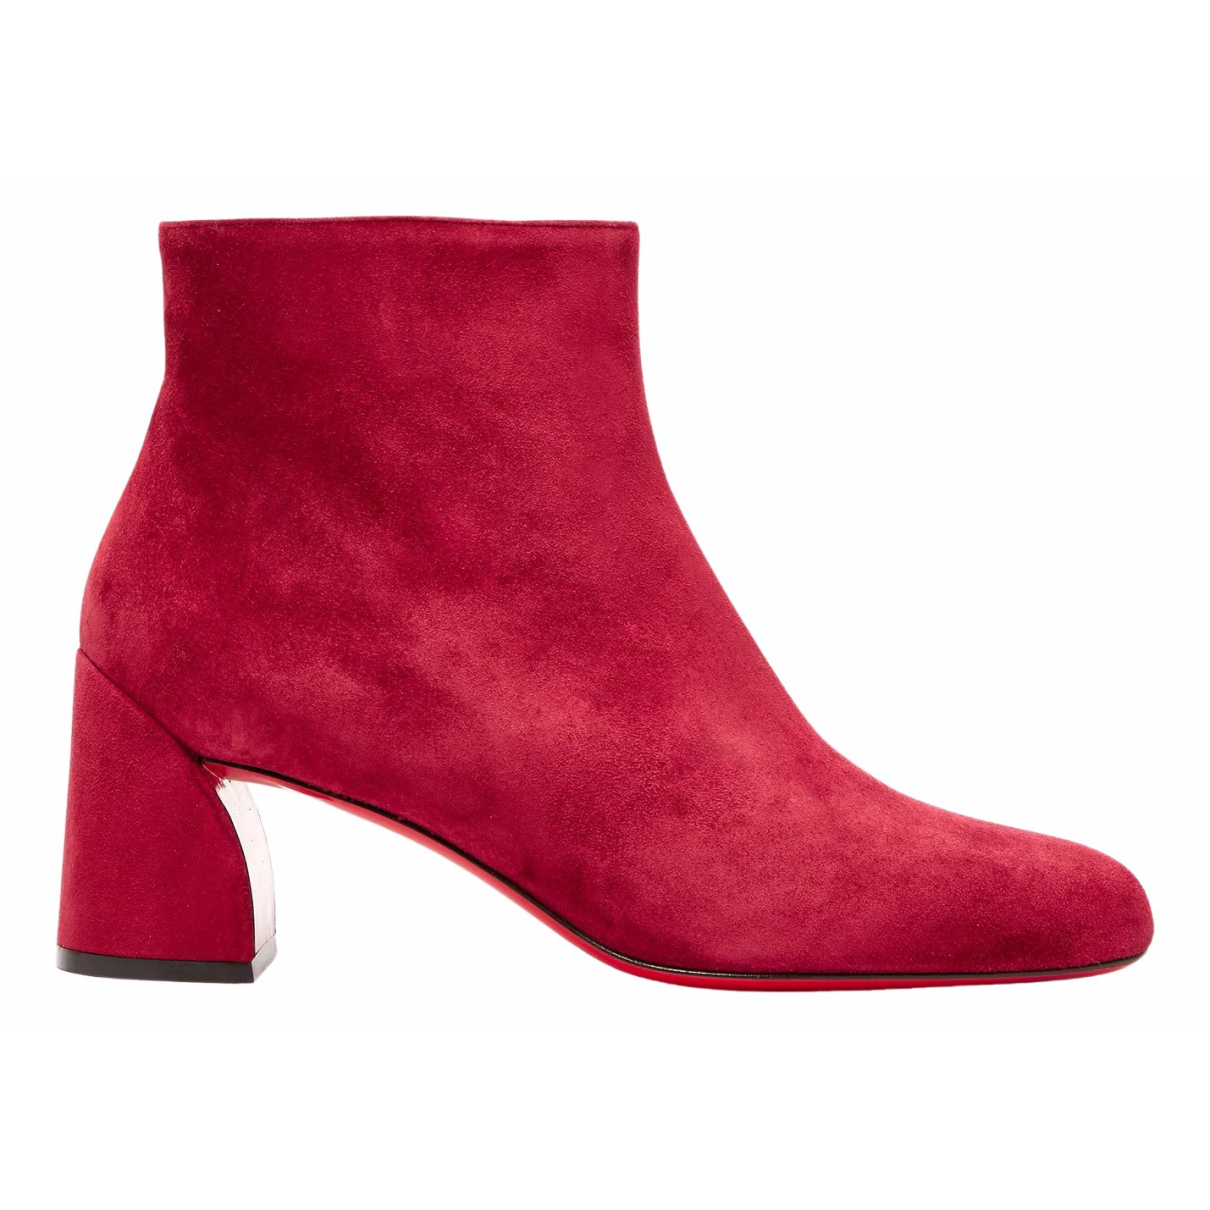 Christian Louboutin \N Red Suede Ankle boots for Women 37 EU